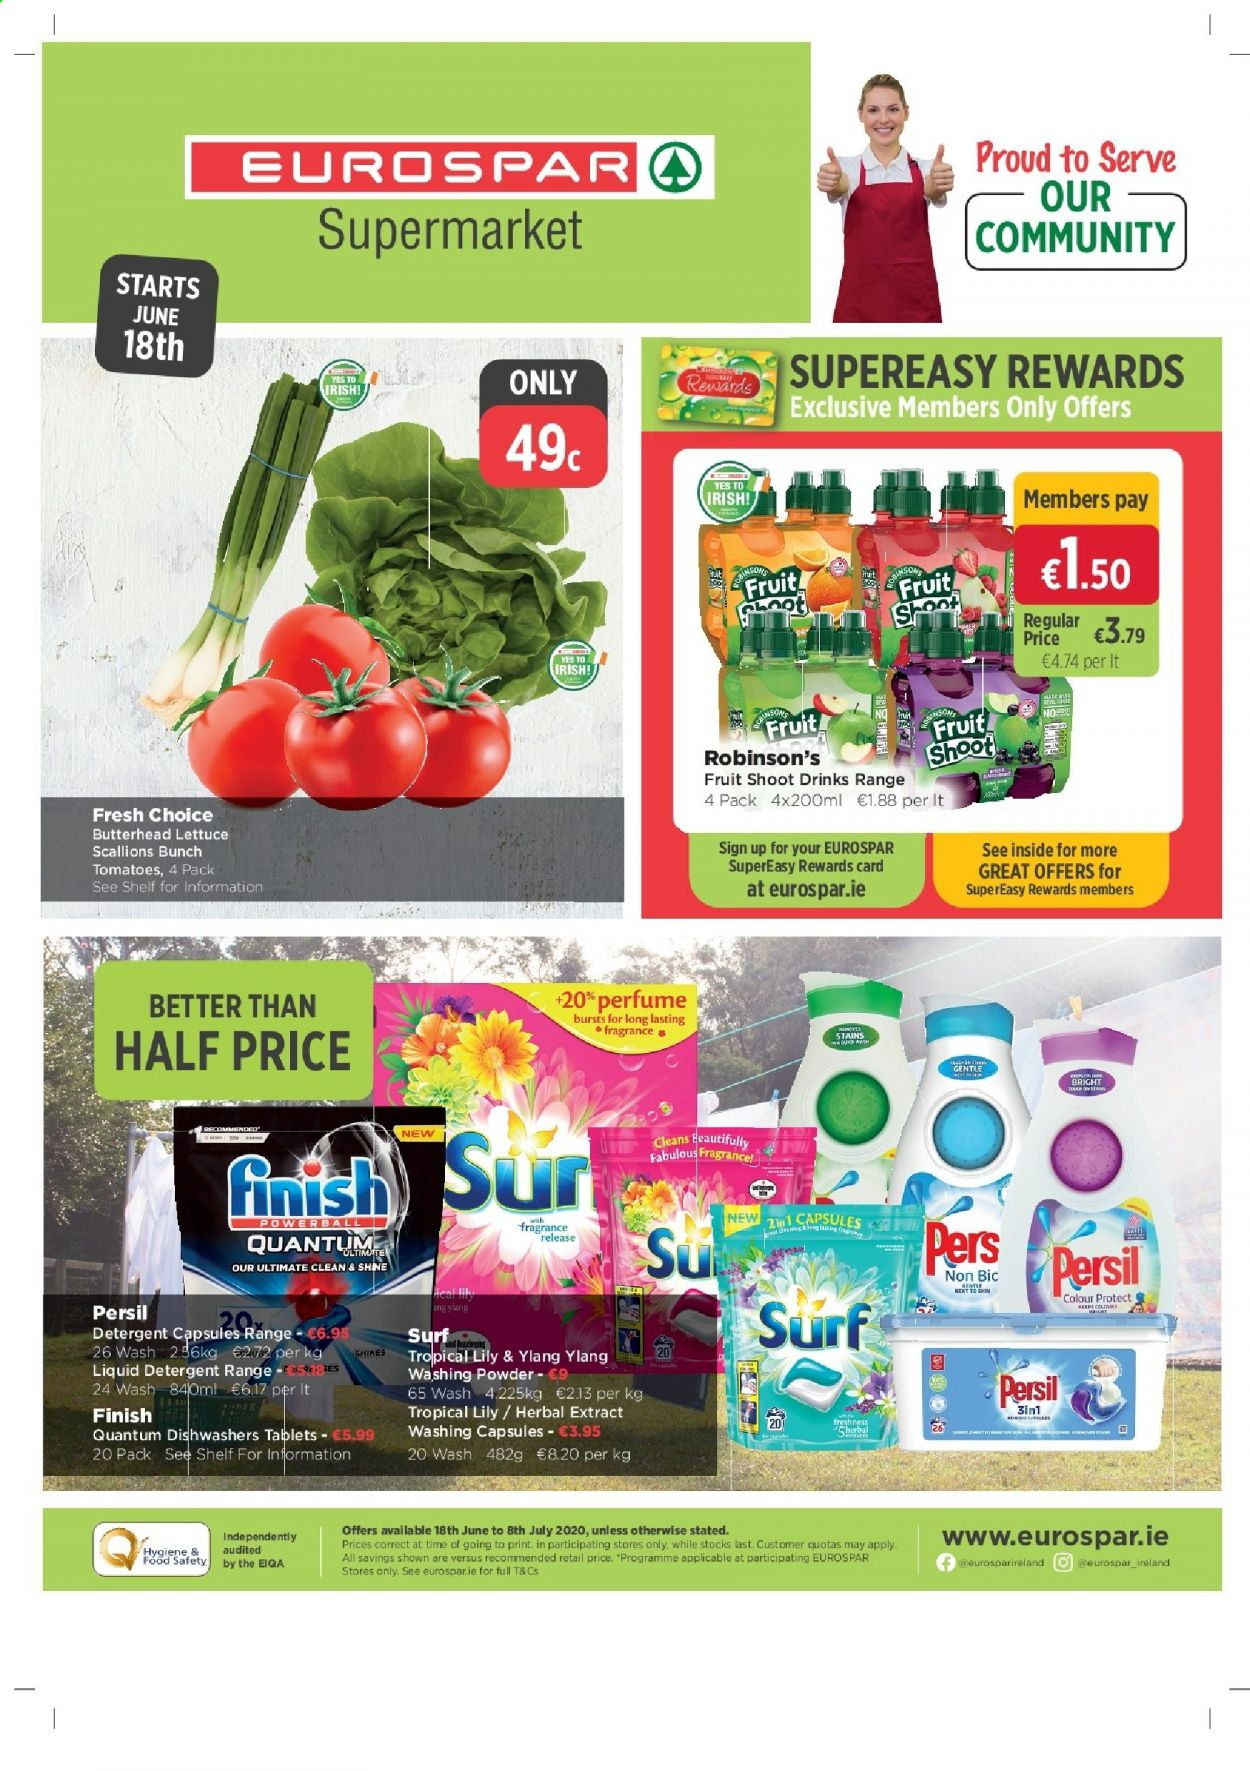 EUROSPAR offer  - 18.6.2020 - 8.7.2020 - Sales products - bic, capsules, detergent, fragrance, scallions, shelf, tomatoes, powder, persil, lettuce, card, washing powder, drink. Page 1.